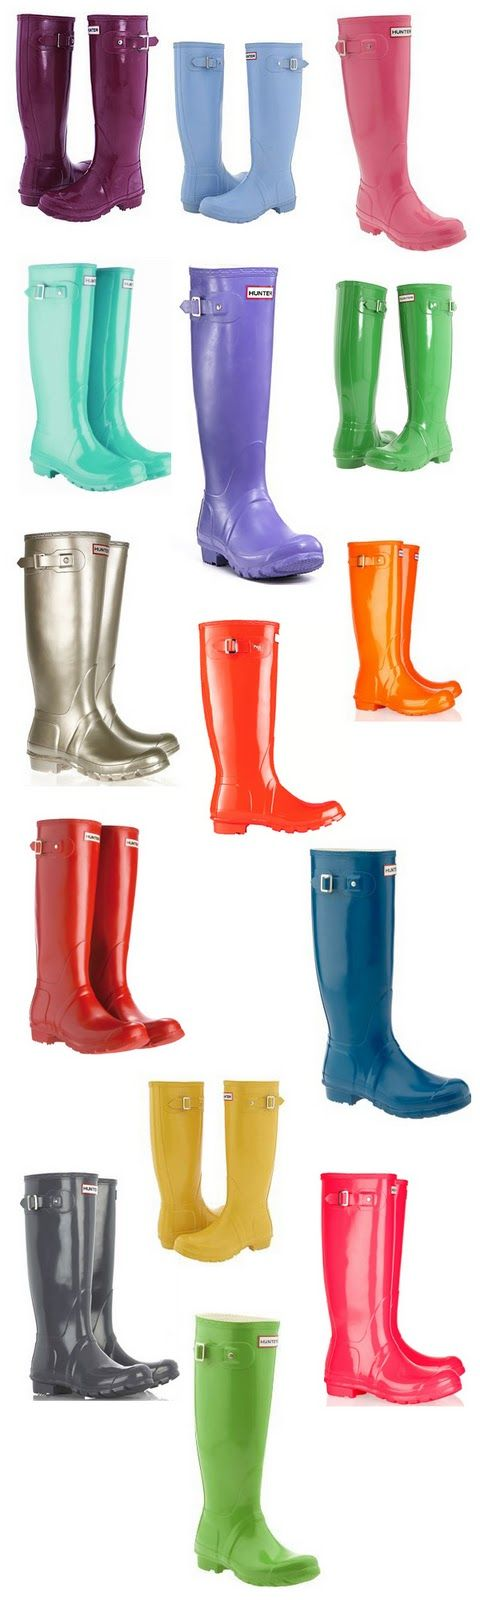 Hunter Wellies! Need the silver pair! @Christina Childress Childress Childress Moceanu just make sure to order the right size ;):